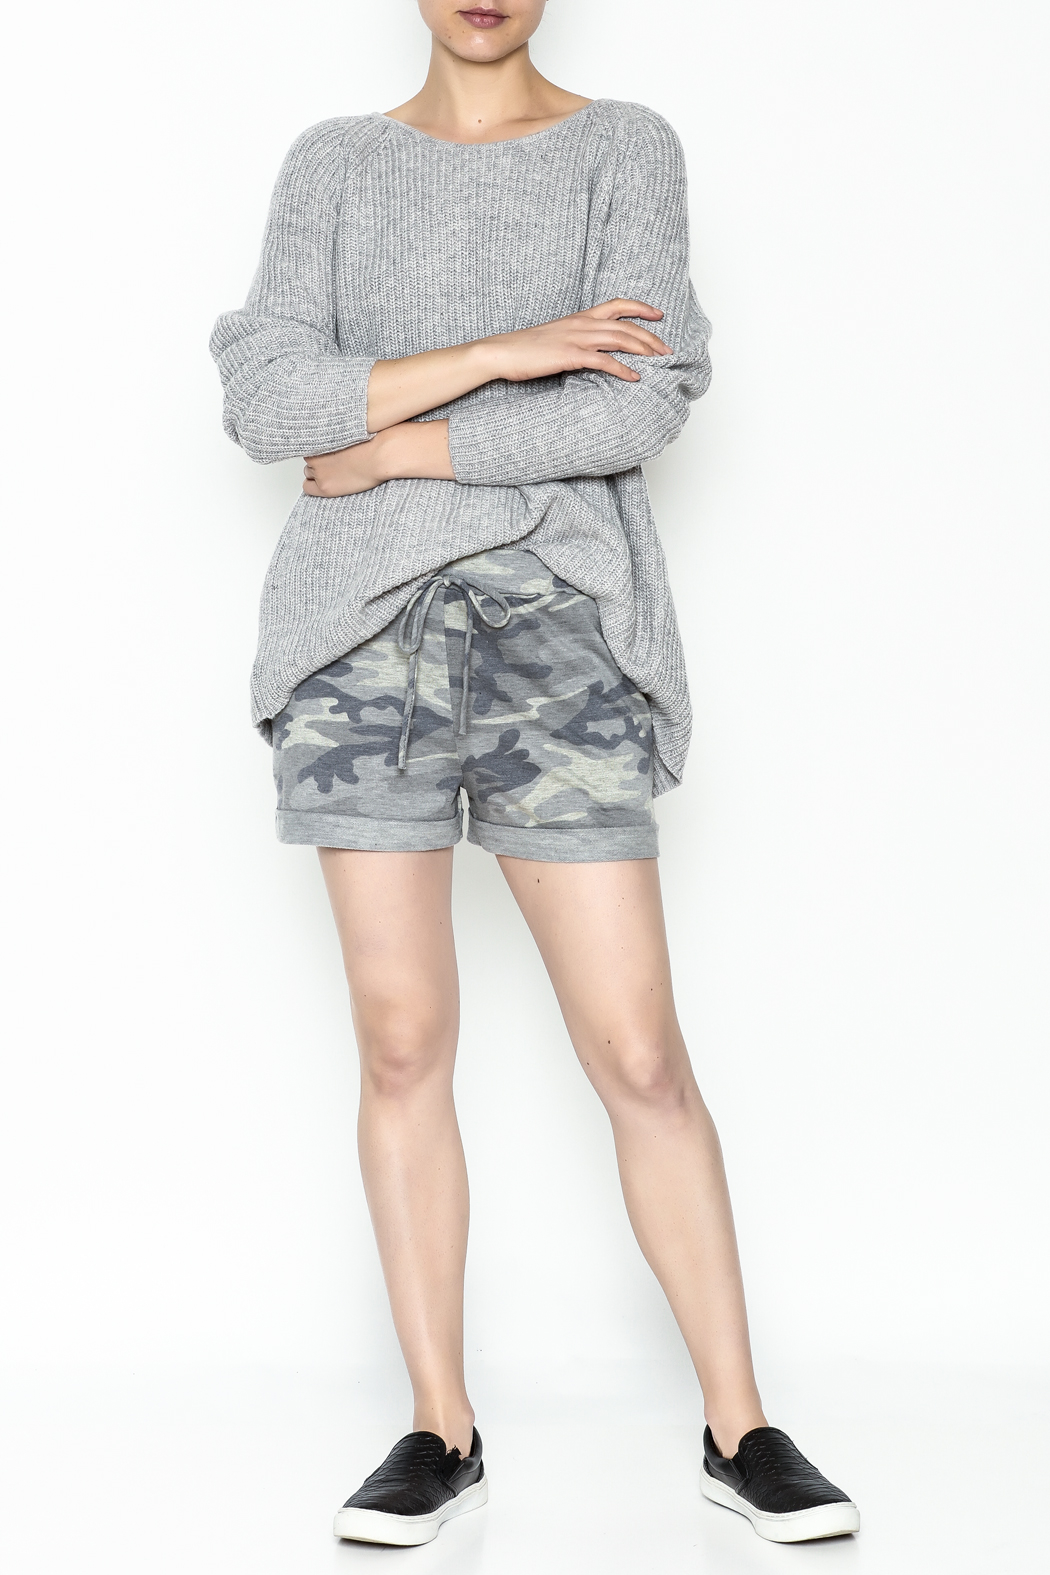 Josie Back Buckles Sweater - Side Cropped Image